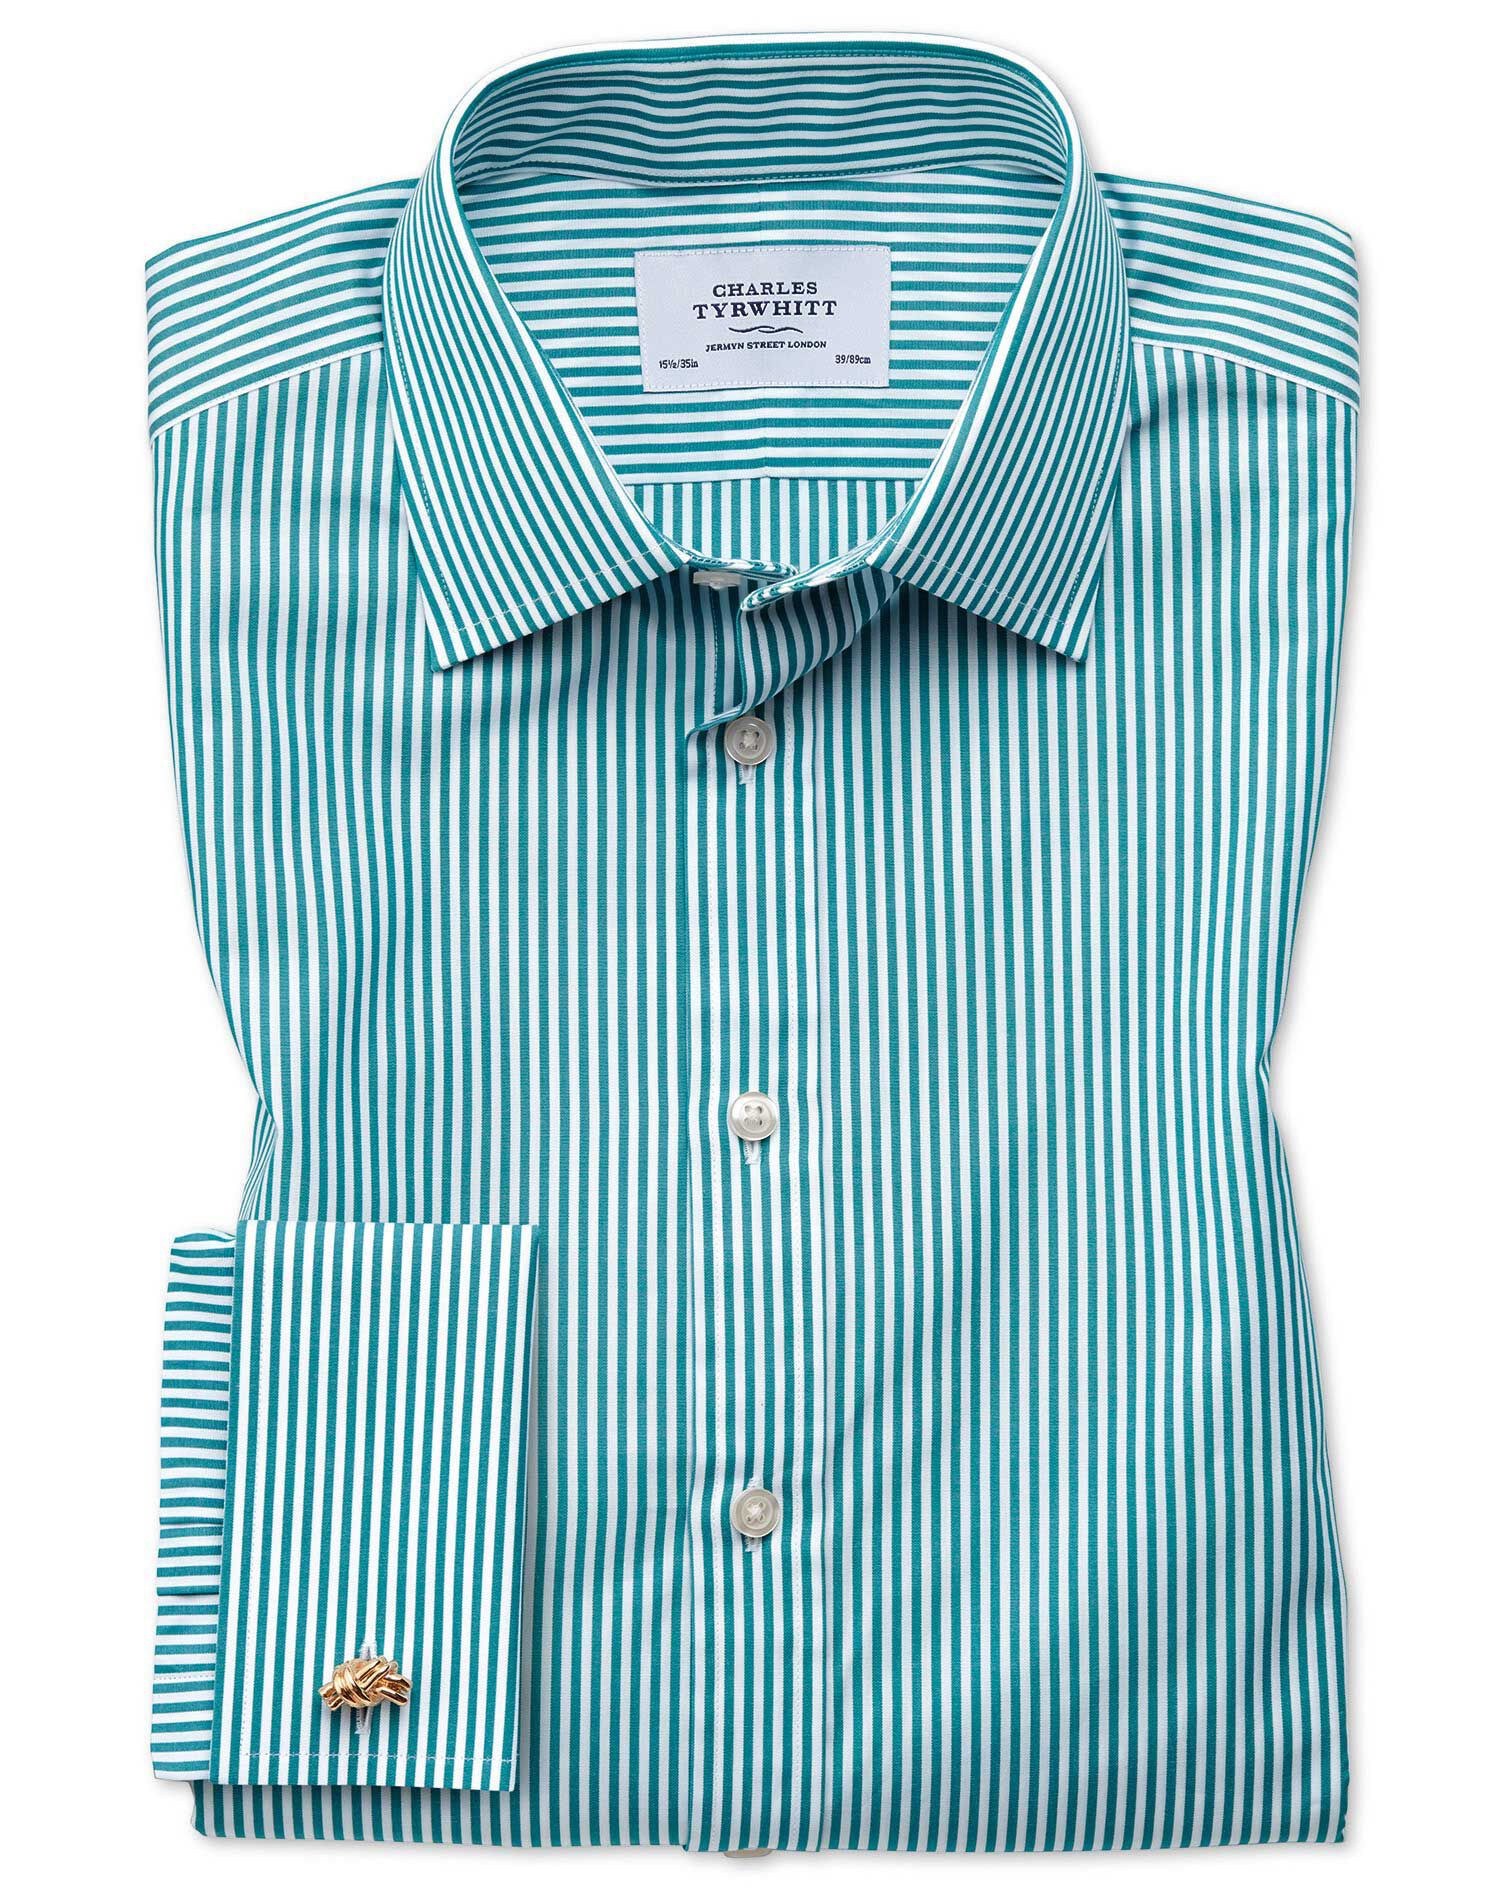 Classic Fit Bengal Stripe Green Cotton Formal Shirt Double Cuff Size 16.5/35 by Charles Tyrwhitt